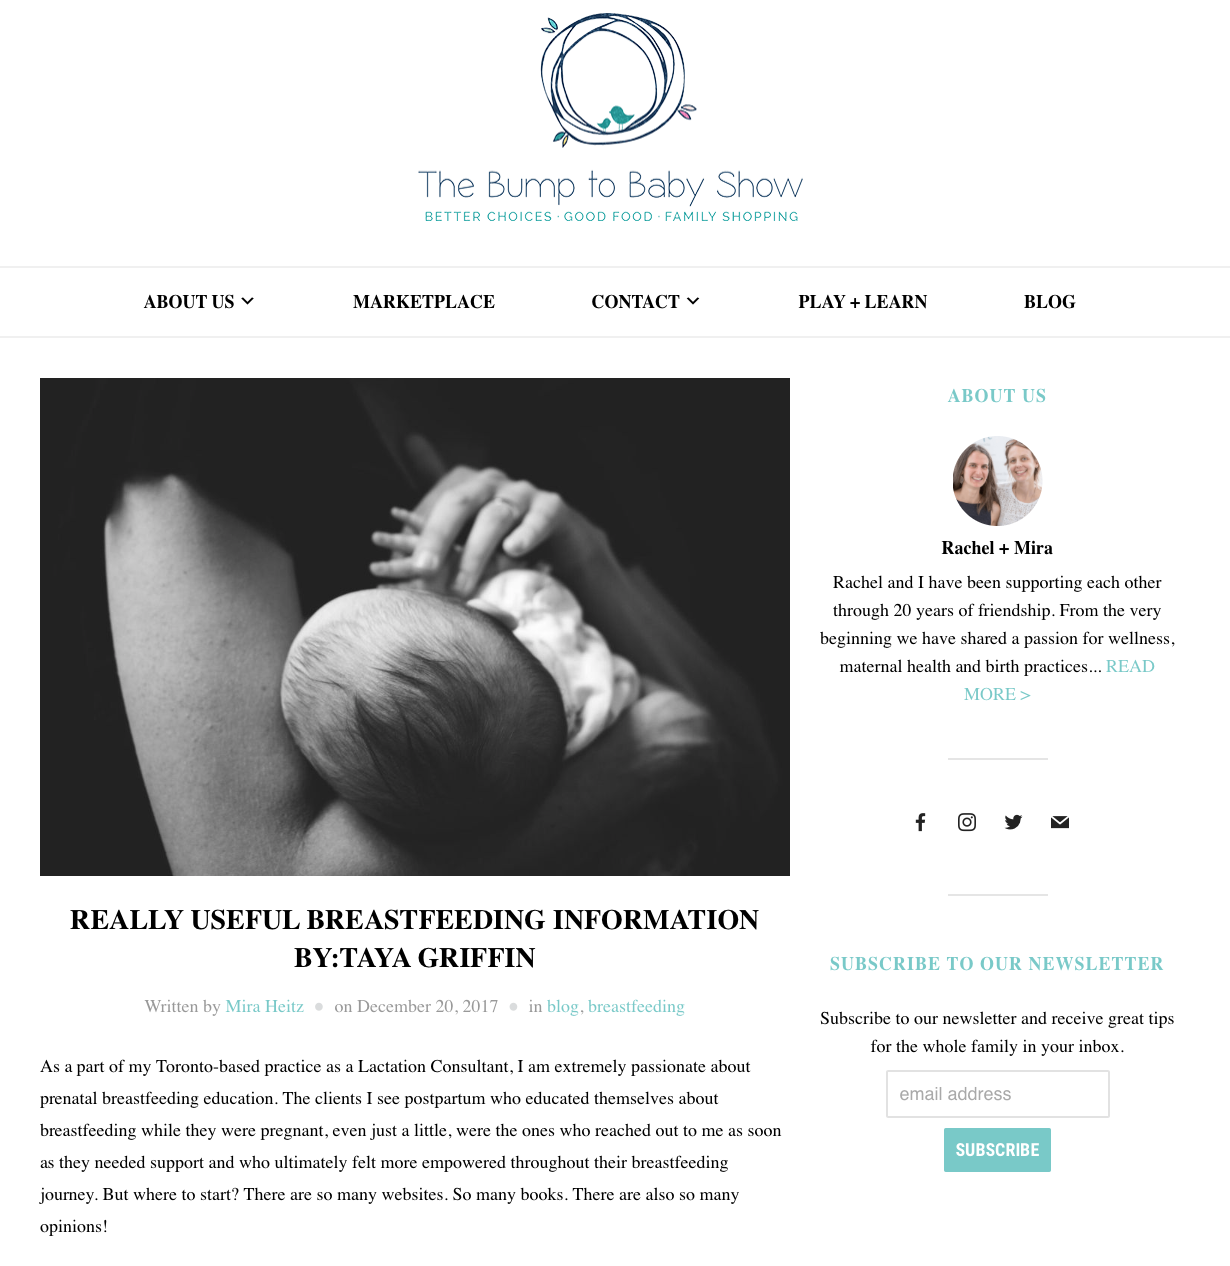 - Click here:Really Useful Breastfeeding InformationTHE BUMP TO BABY SHOW BLOG, December 20, 2017